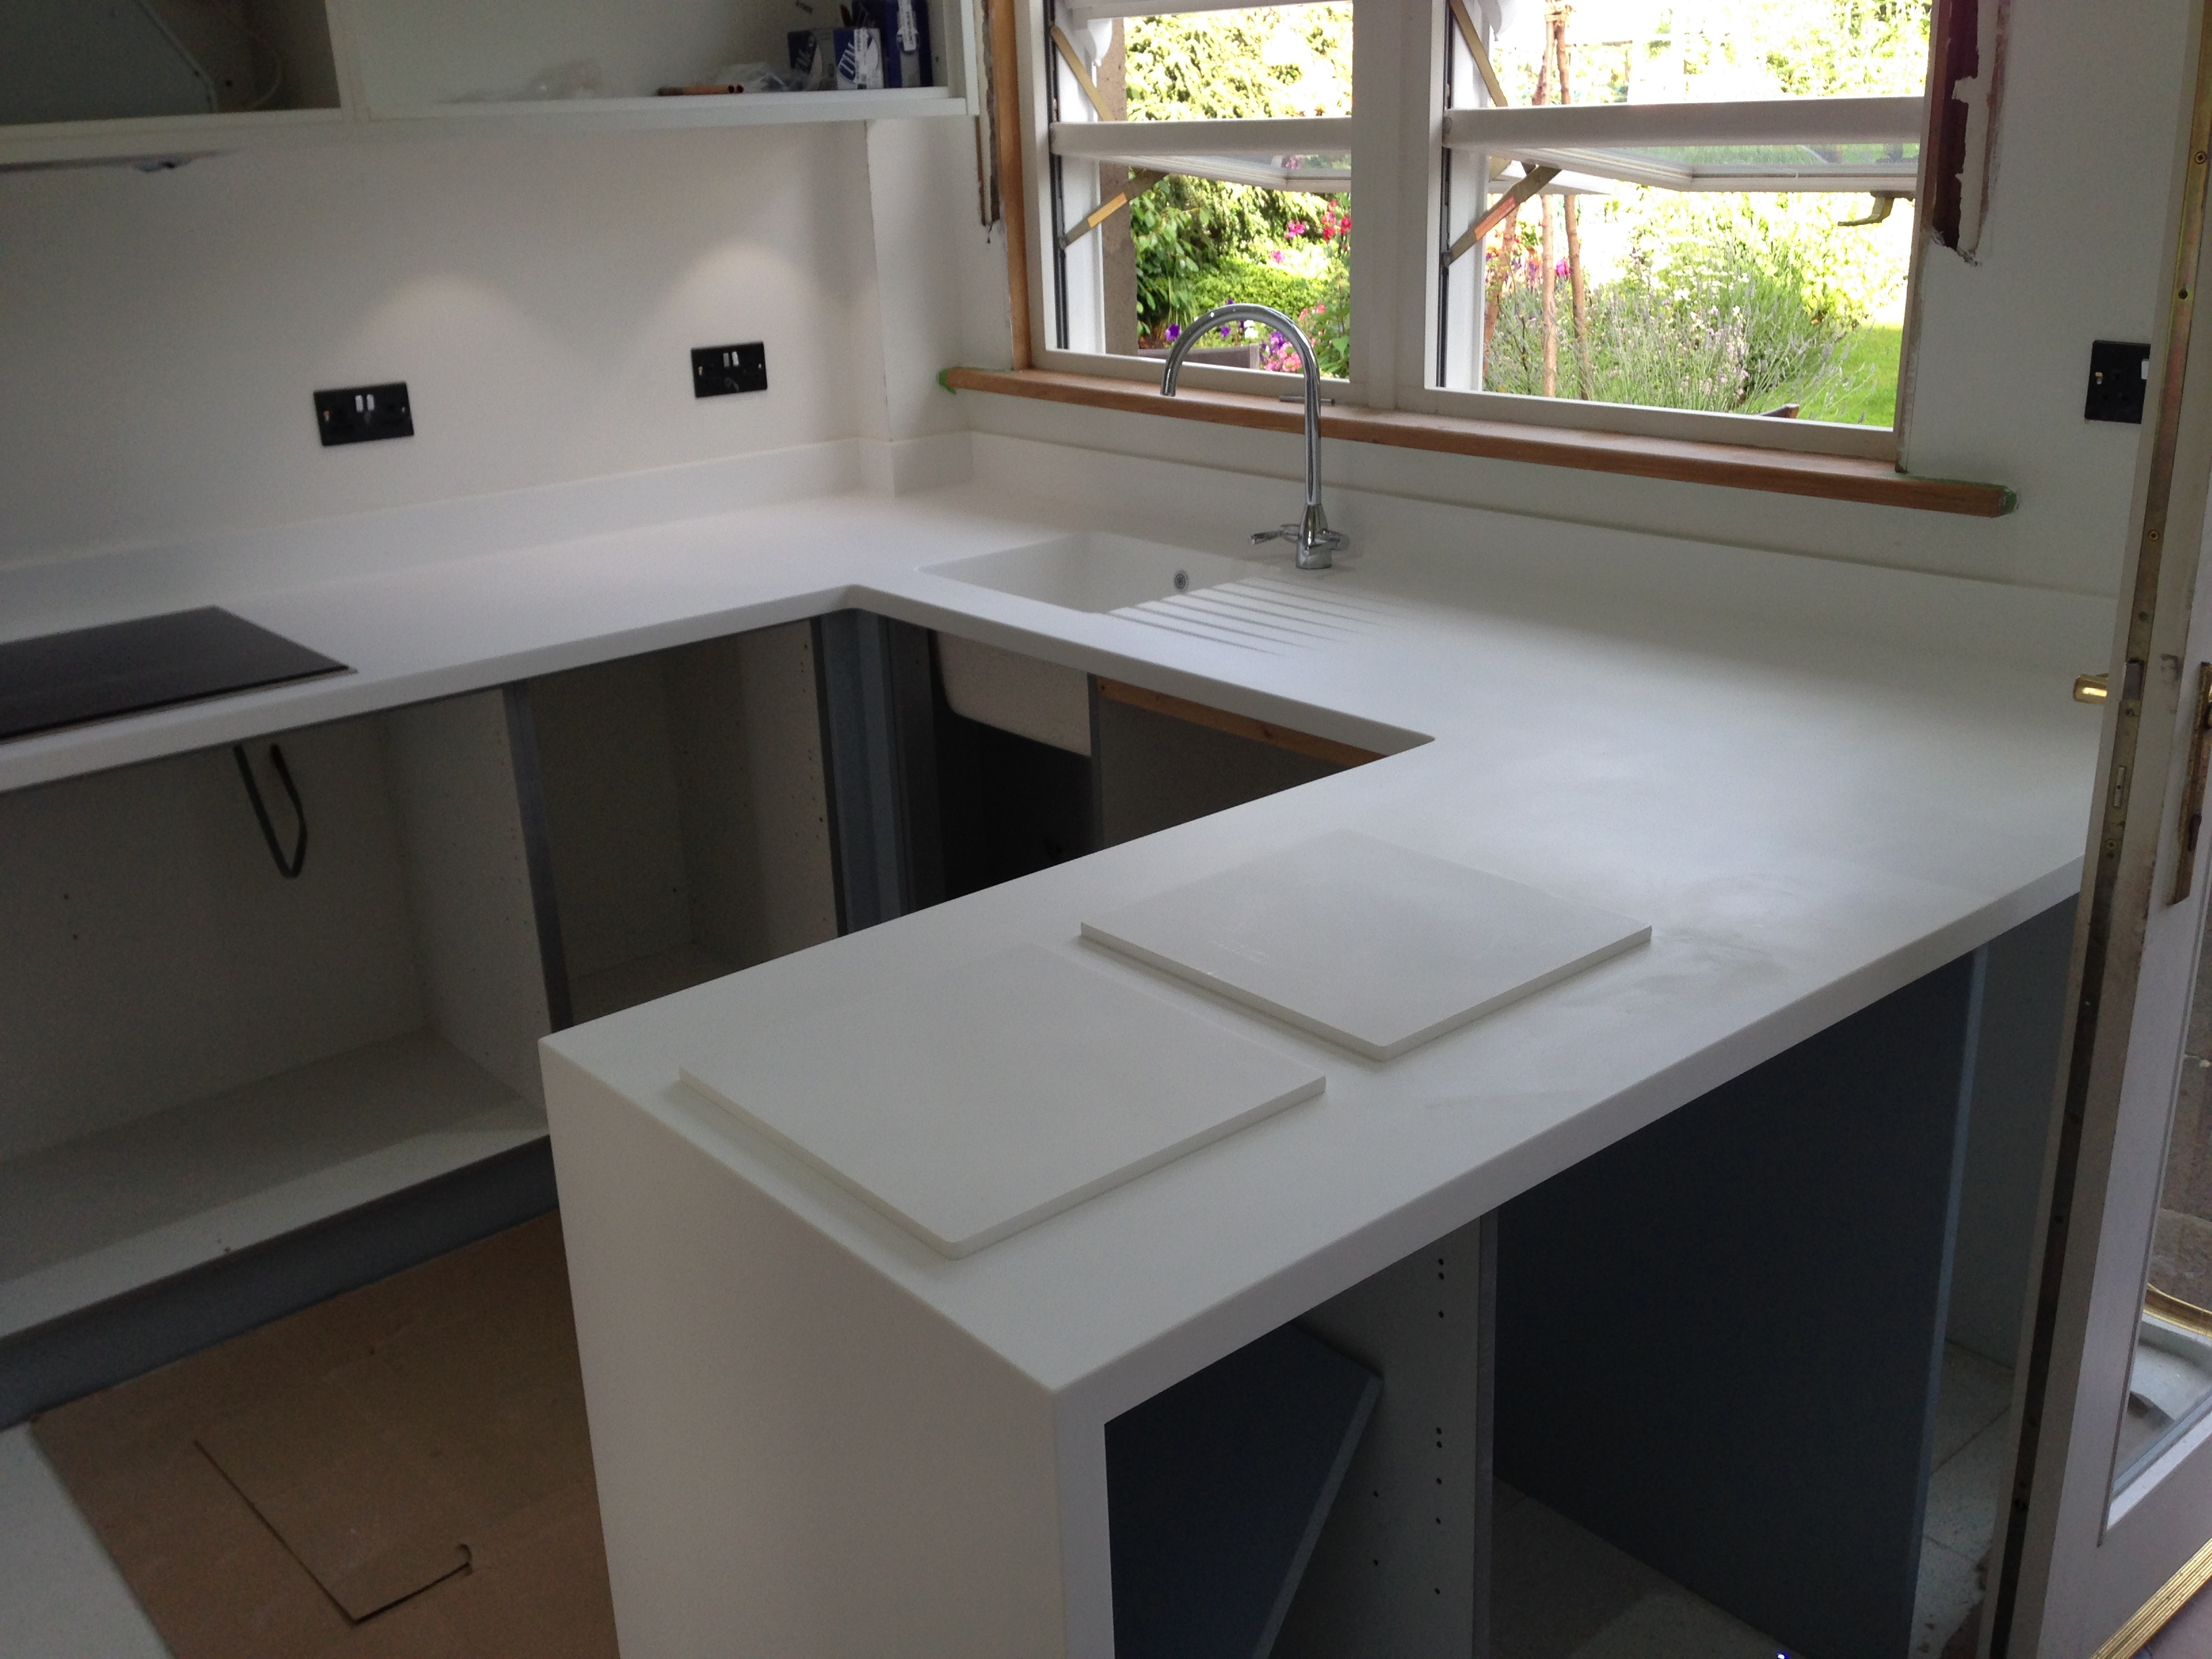 builders solidsurface wilharm remodel corian page kitchen countertops archives blog with surface solid gloede white com